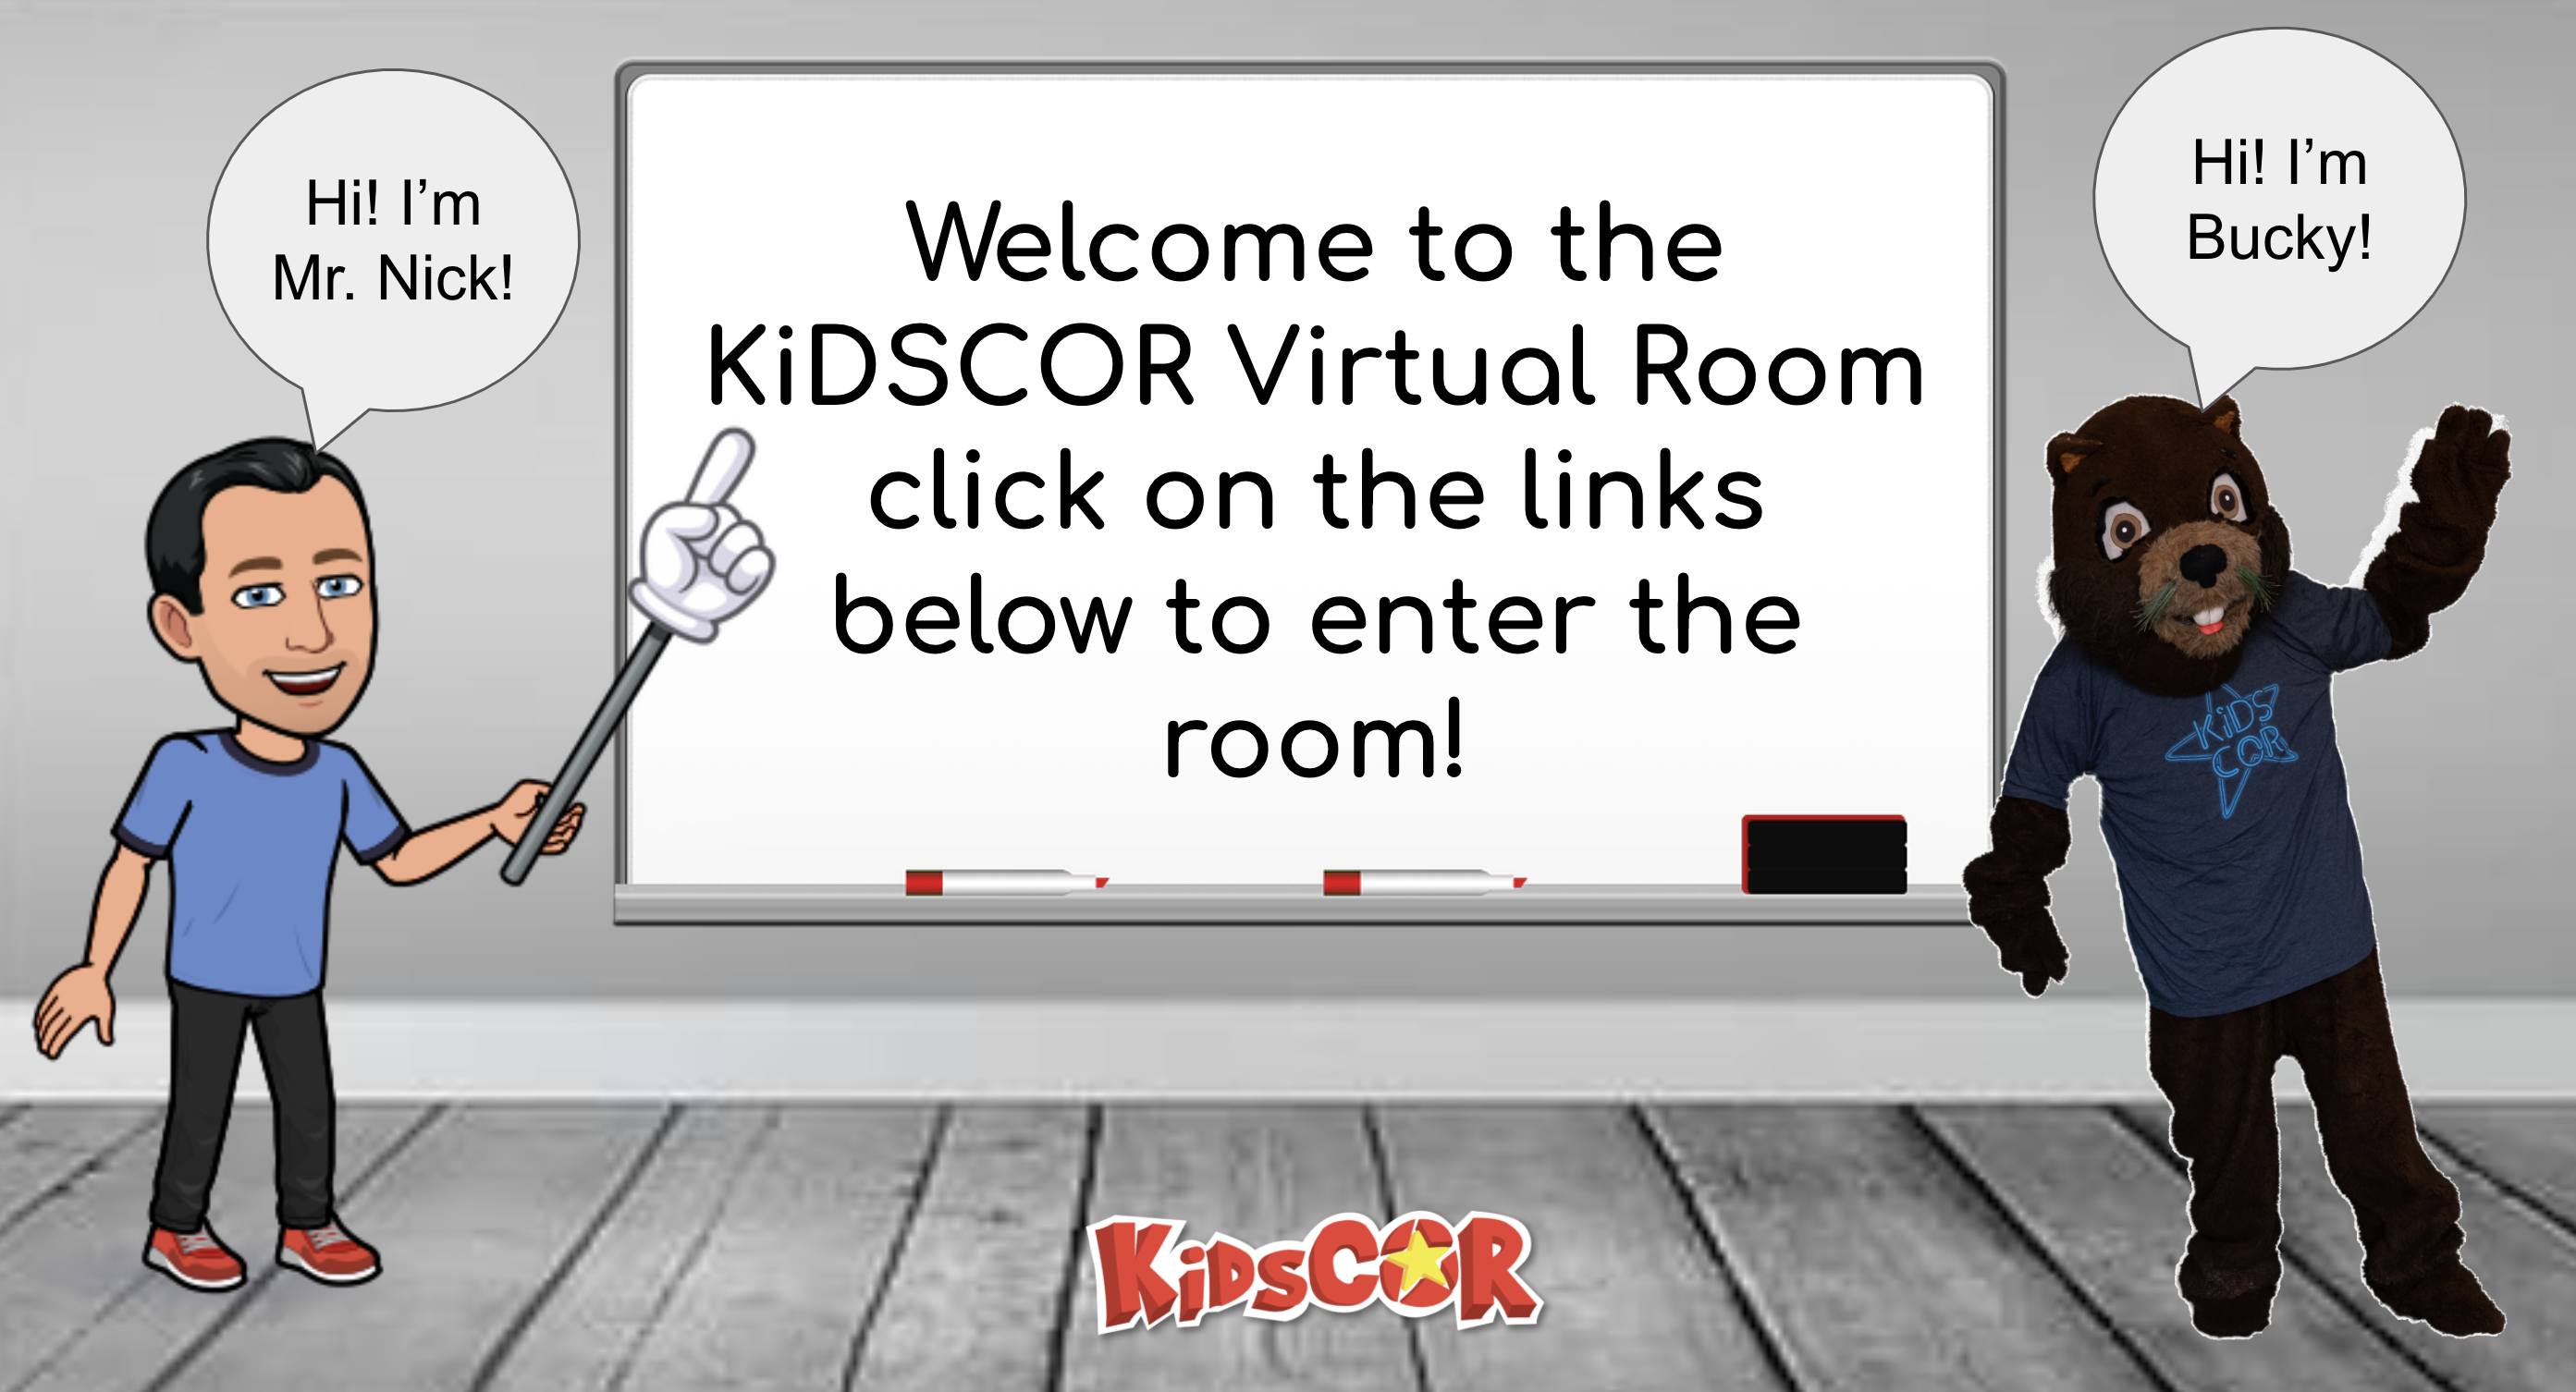 Welcome to the KiDSCOR Virtual Room!